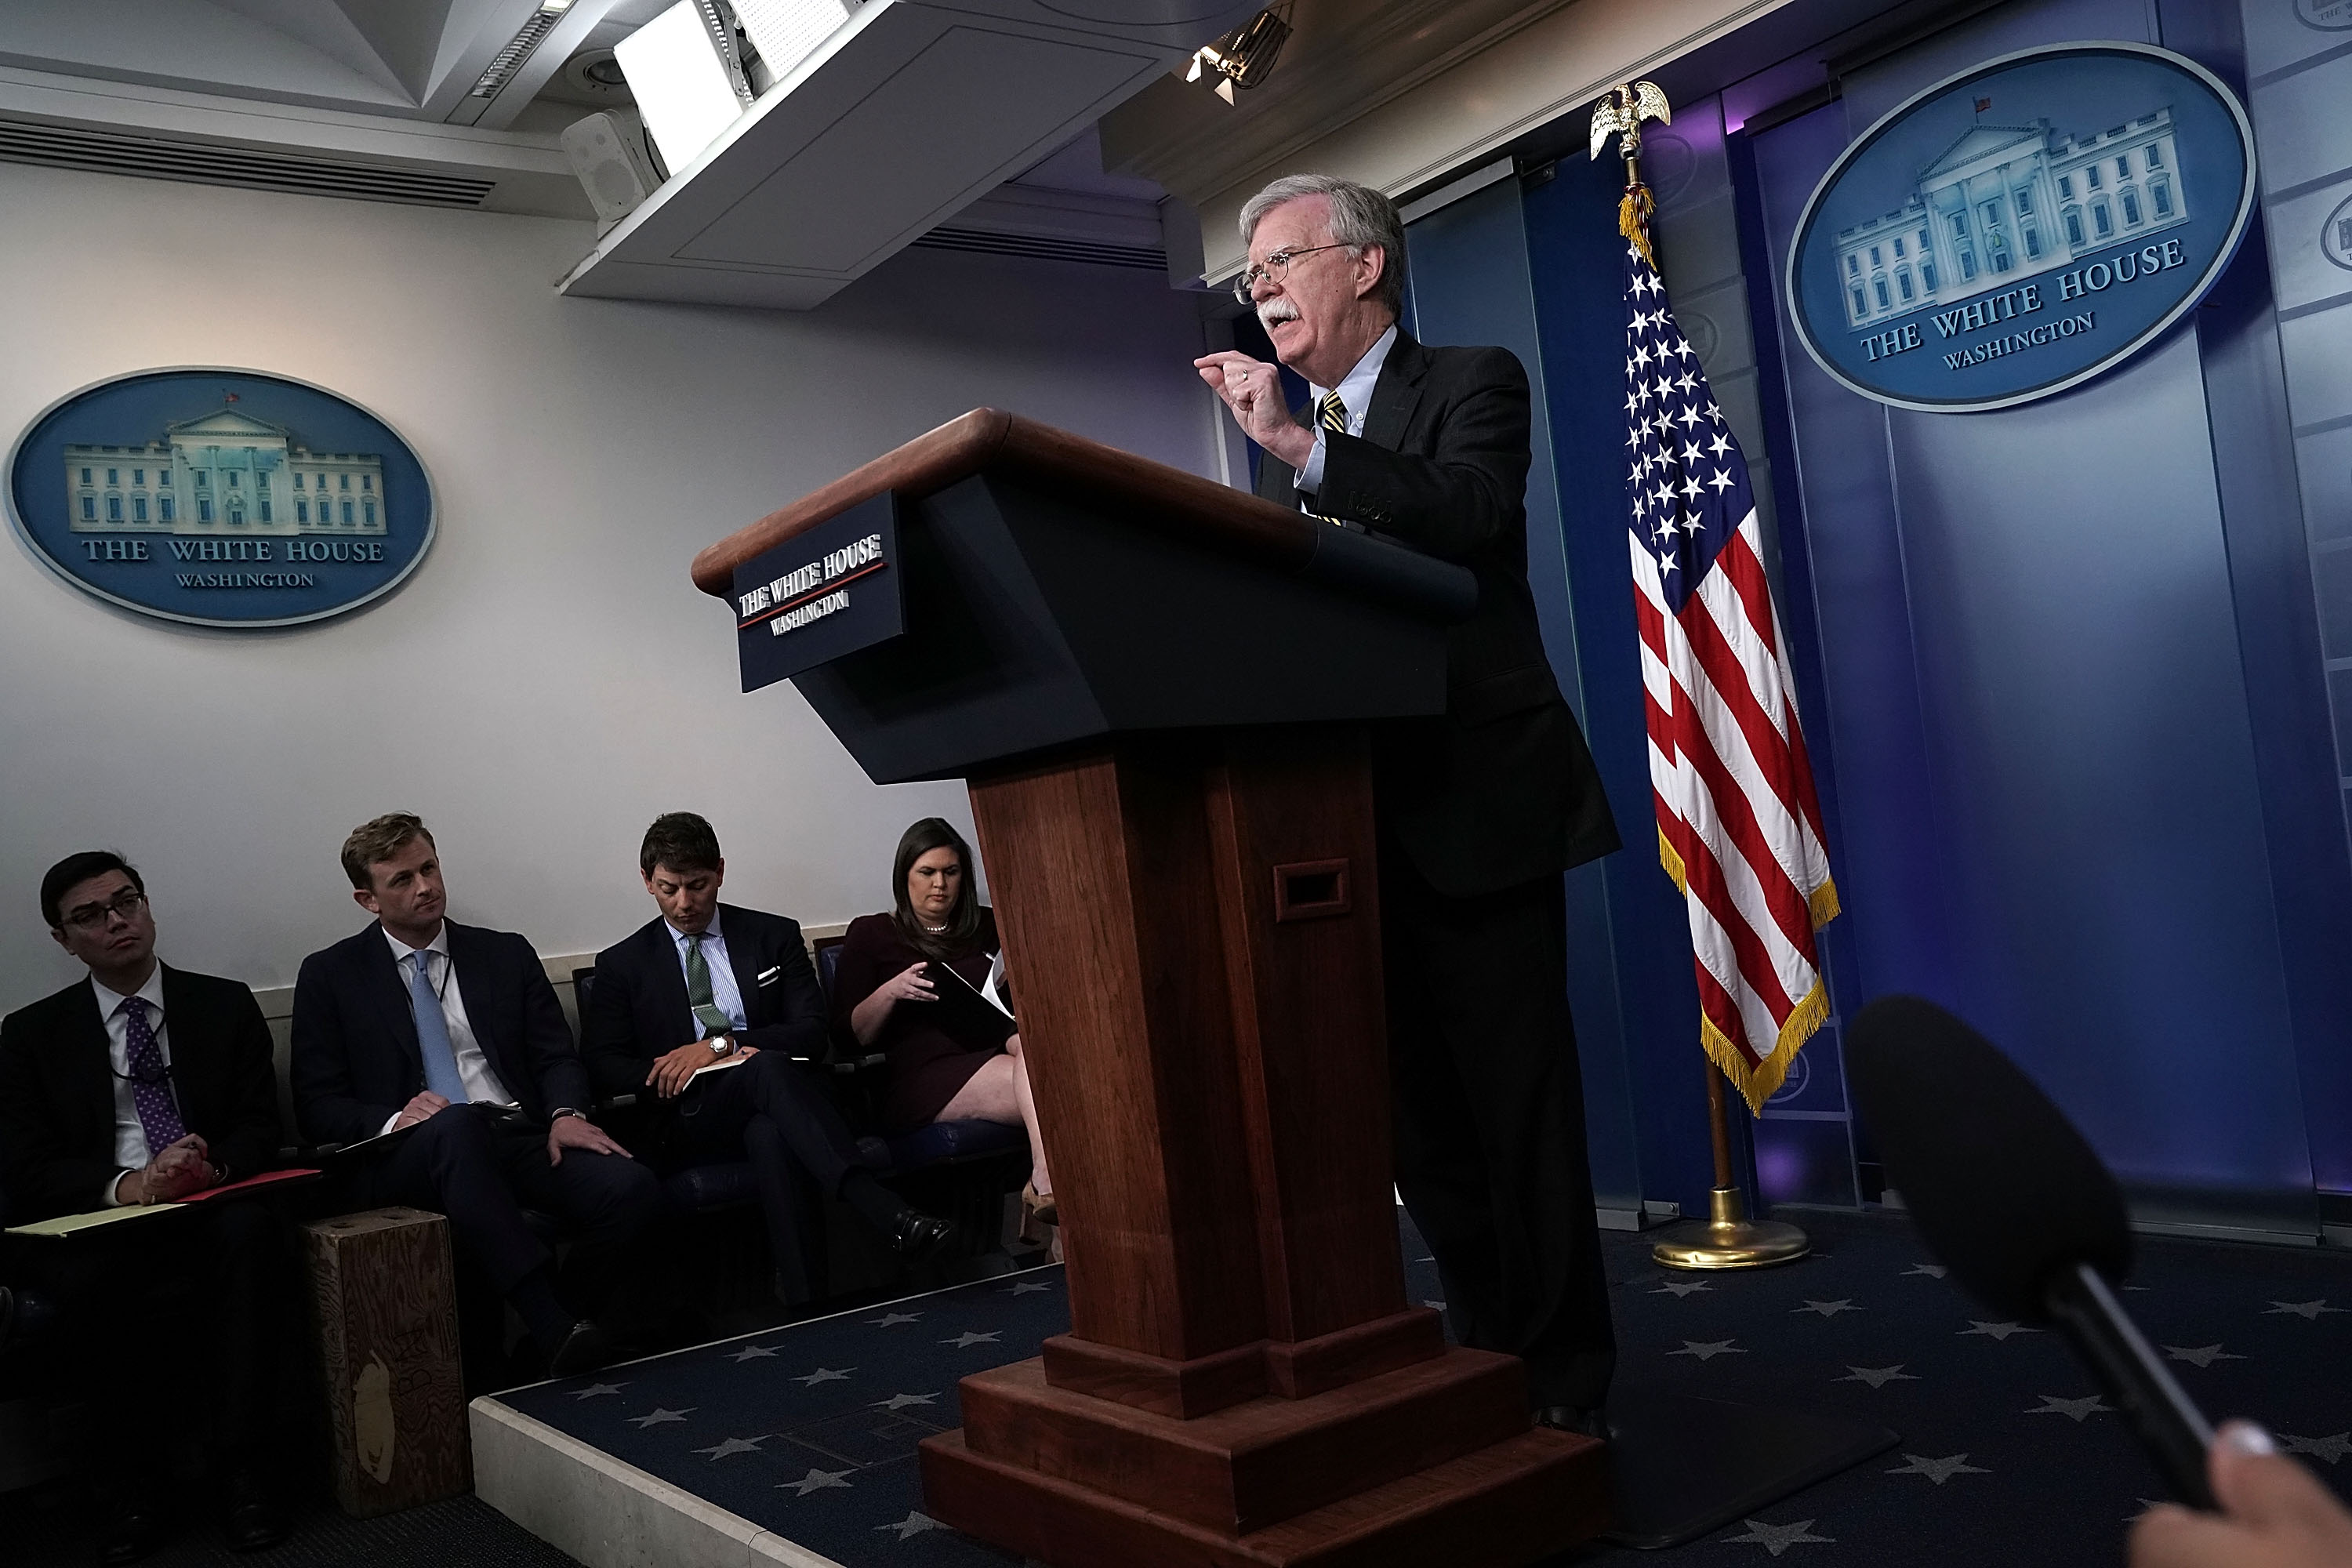 John Bolton Joins Sarah Sanders For Press Briefing At The White House